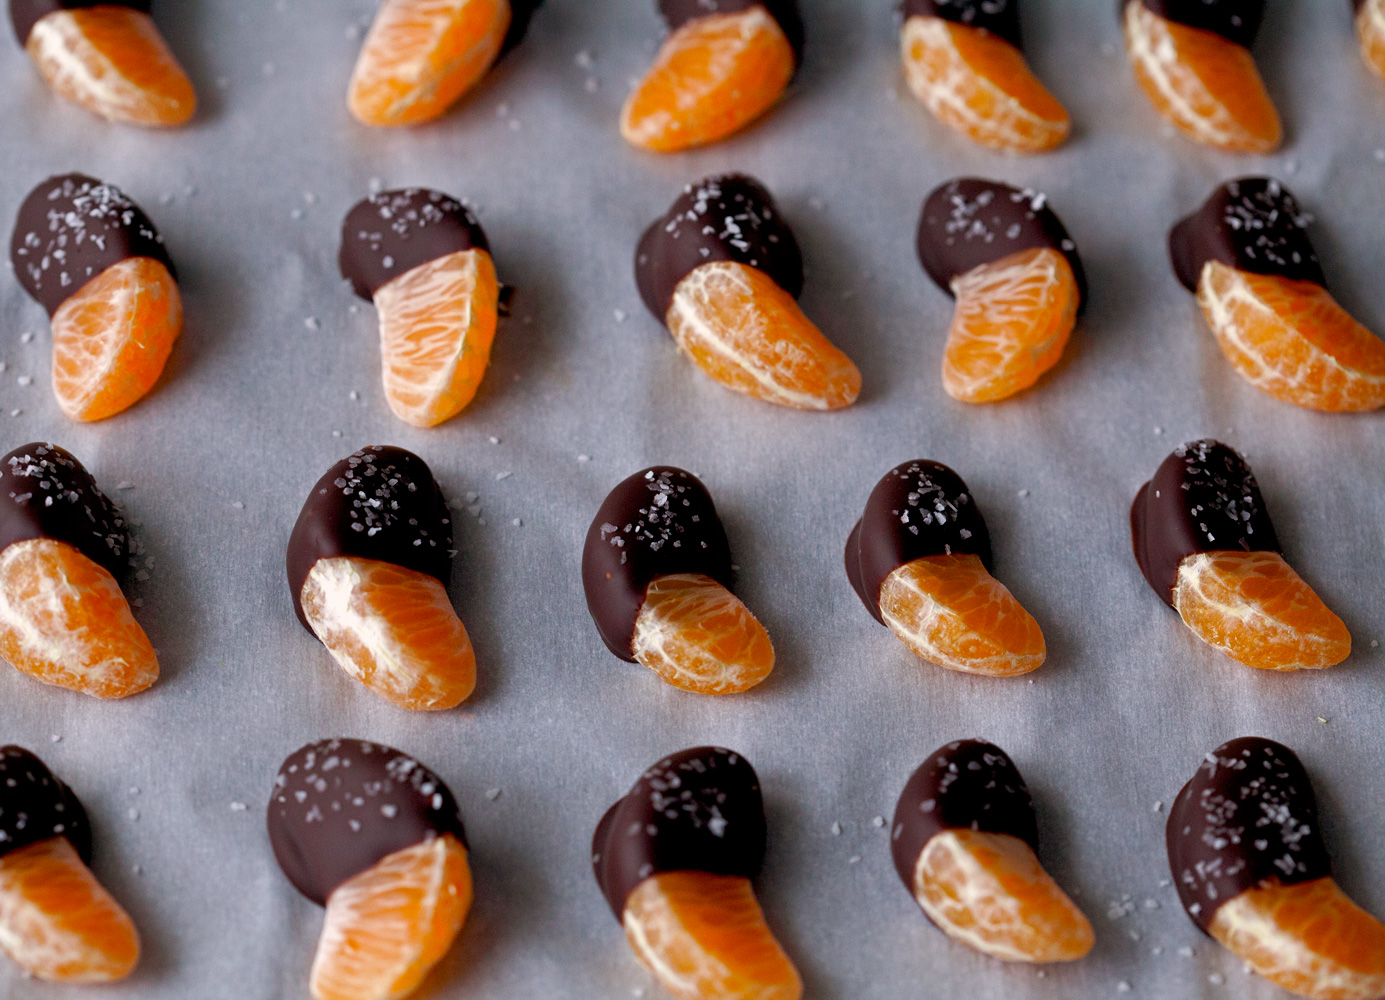 Chocolate Dipped Mandarins Sprinkles with Sea Salt by Deliciously Yum!